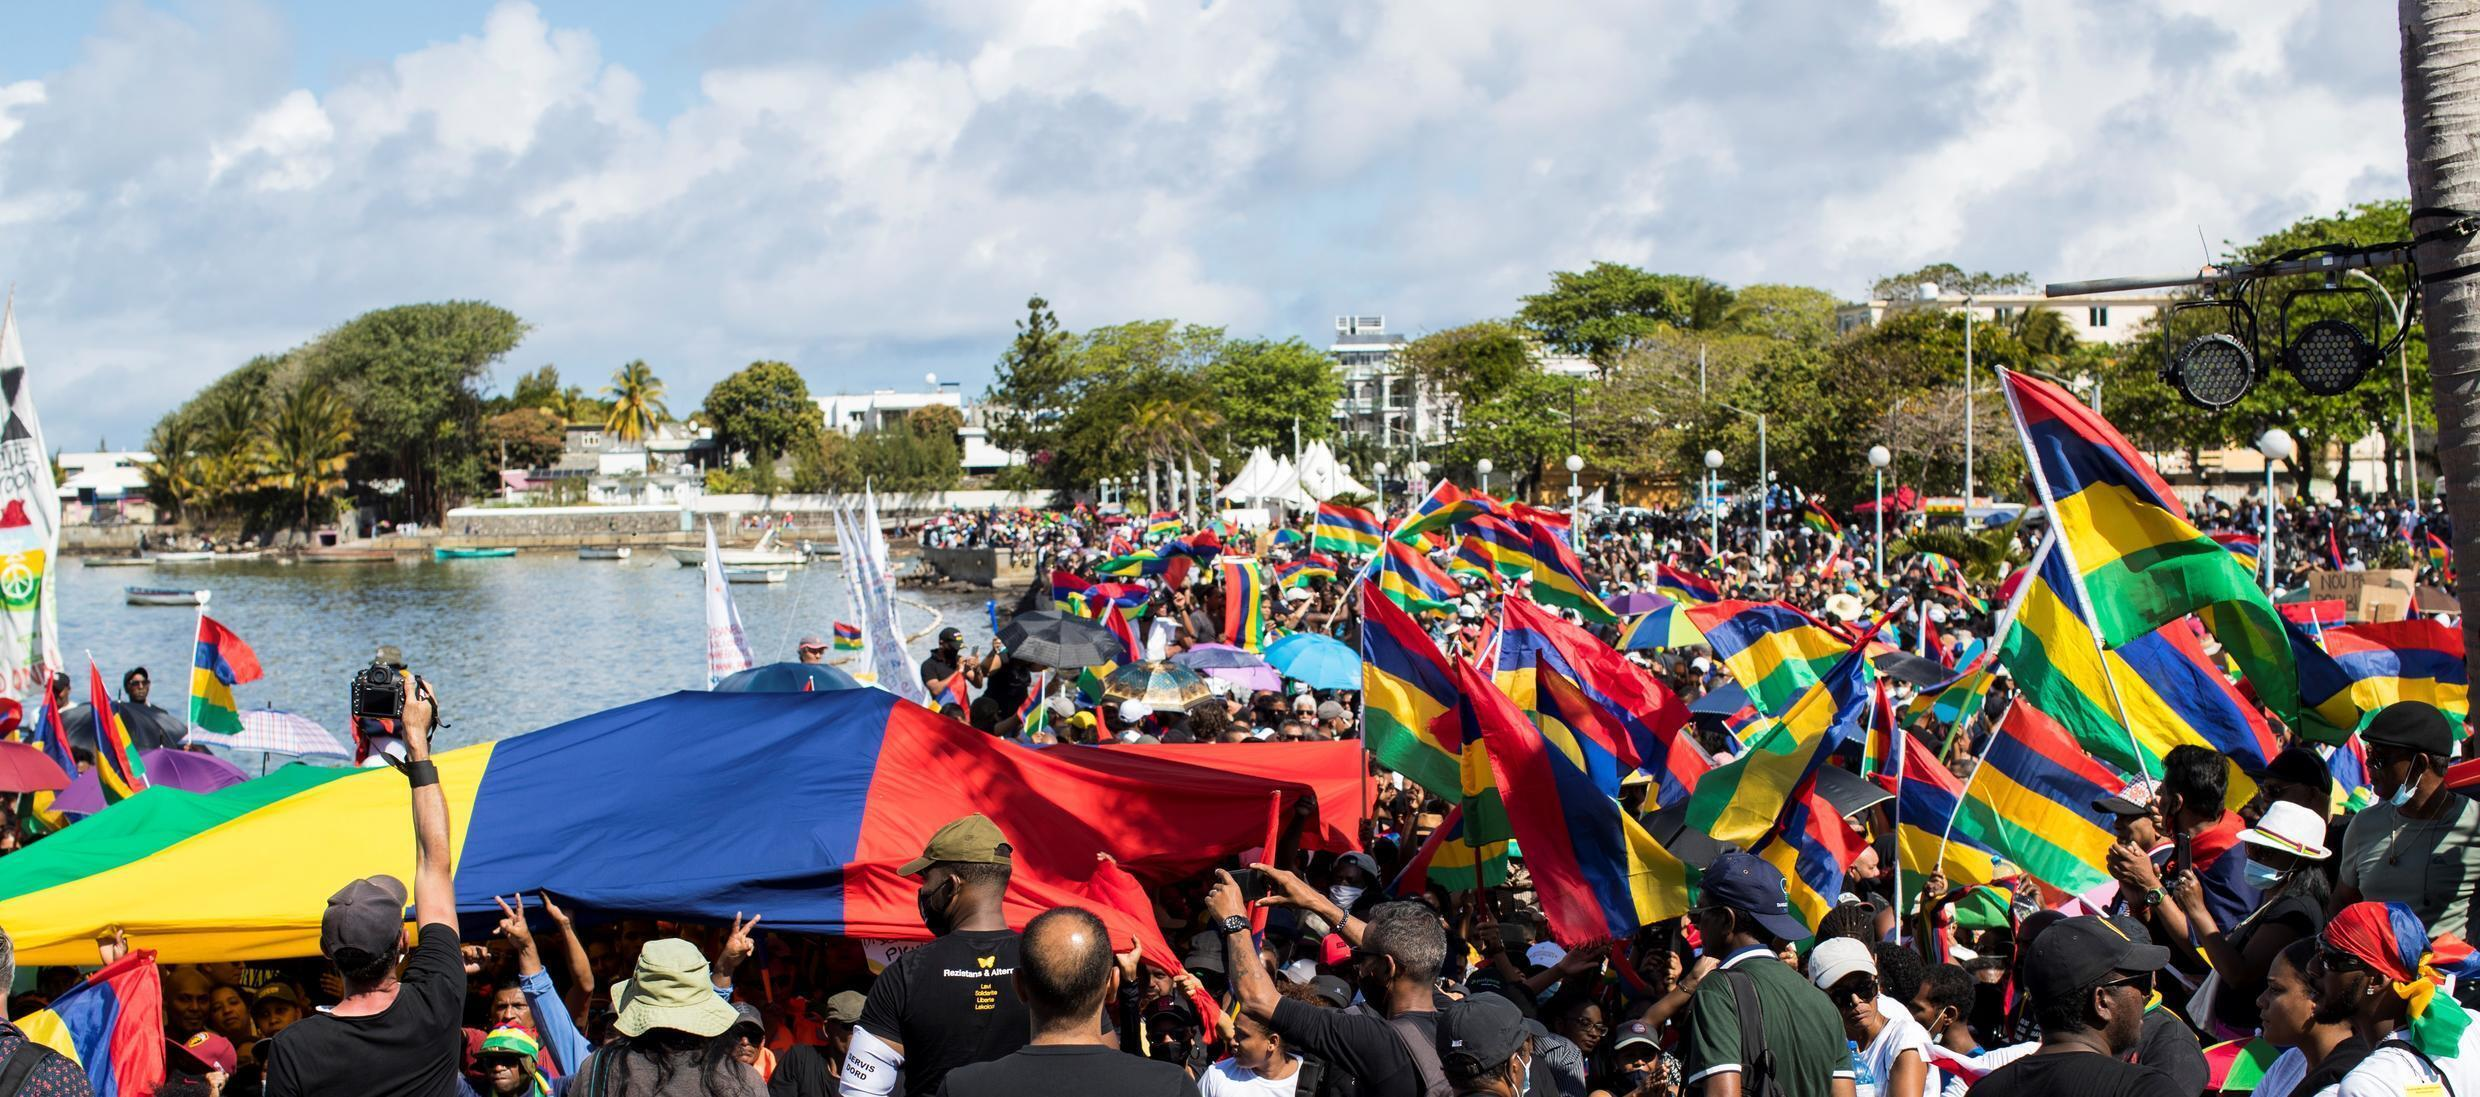 Mahebourg waterfront crowd by Tristan Chaillet Mauritius Maurice